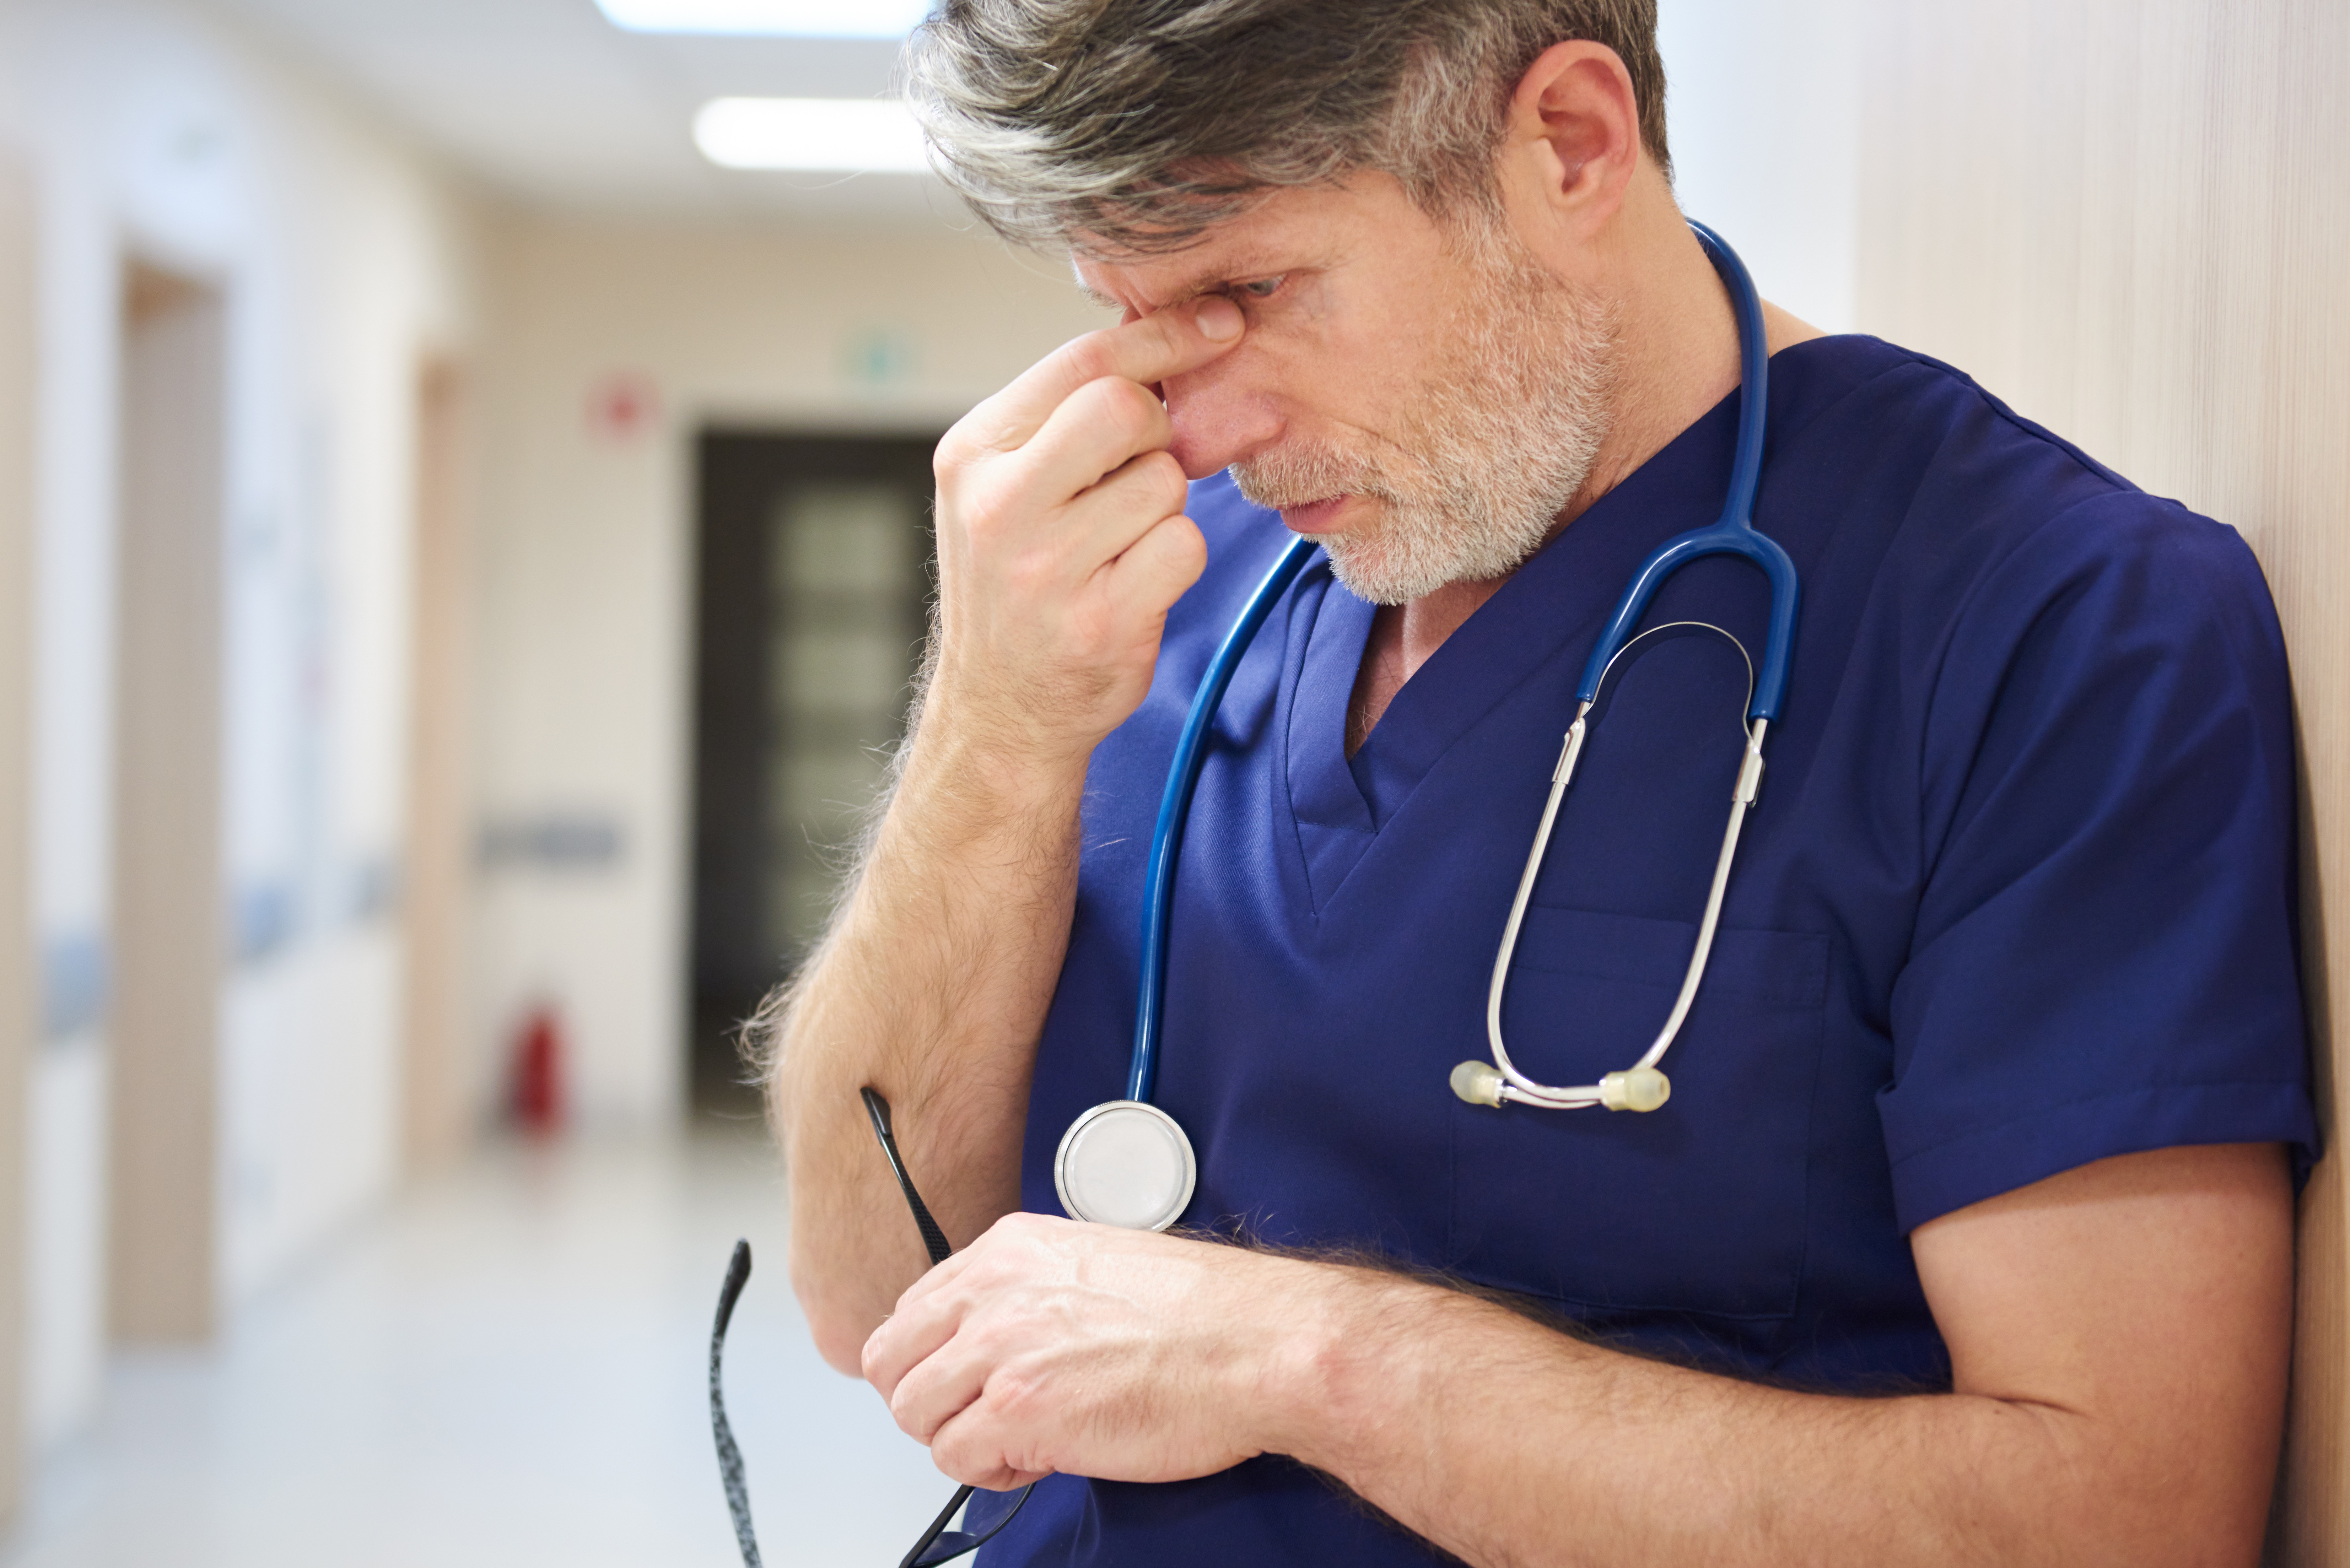 Physician Burnout: Causes, Mechanisms, Consequences, And Solutions